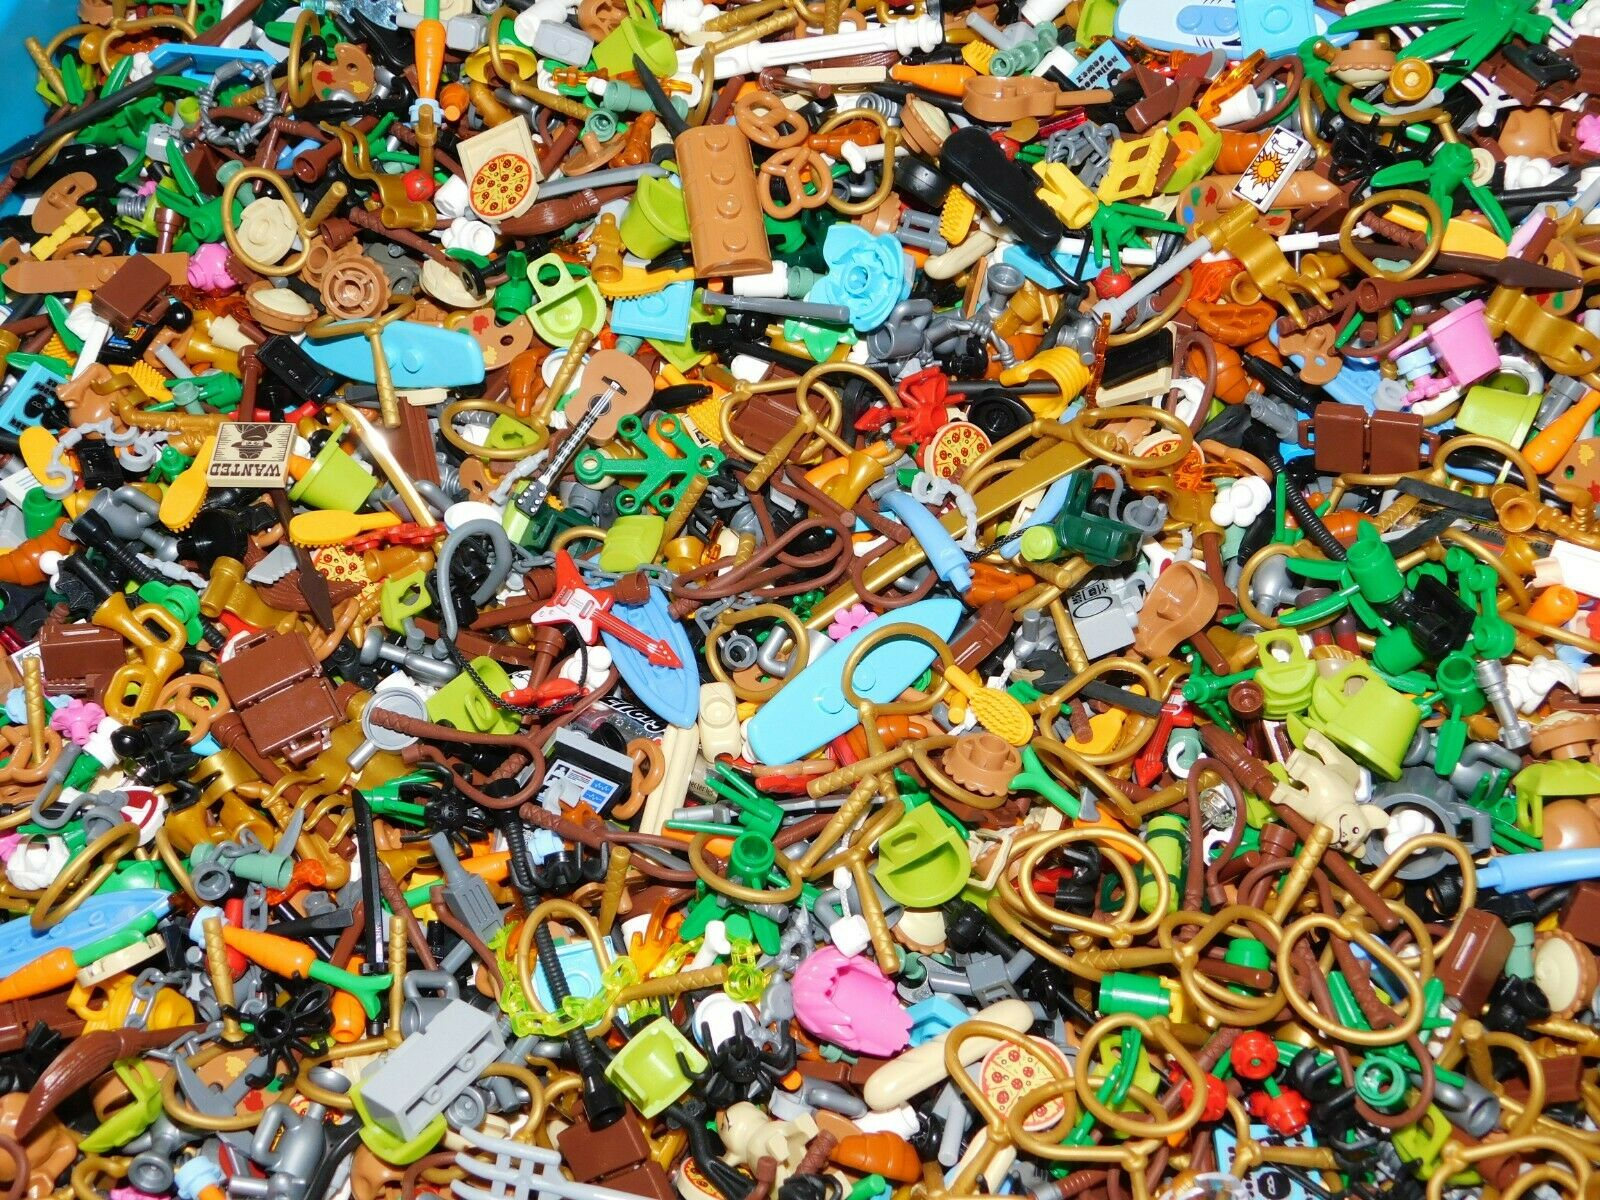 1500 LEGO HUGE LOT OF RARE UTENSILS ACCESSORIES CUPS BOWLS GUITAR FOR MINIFIGS